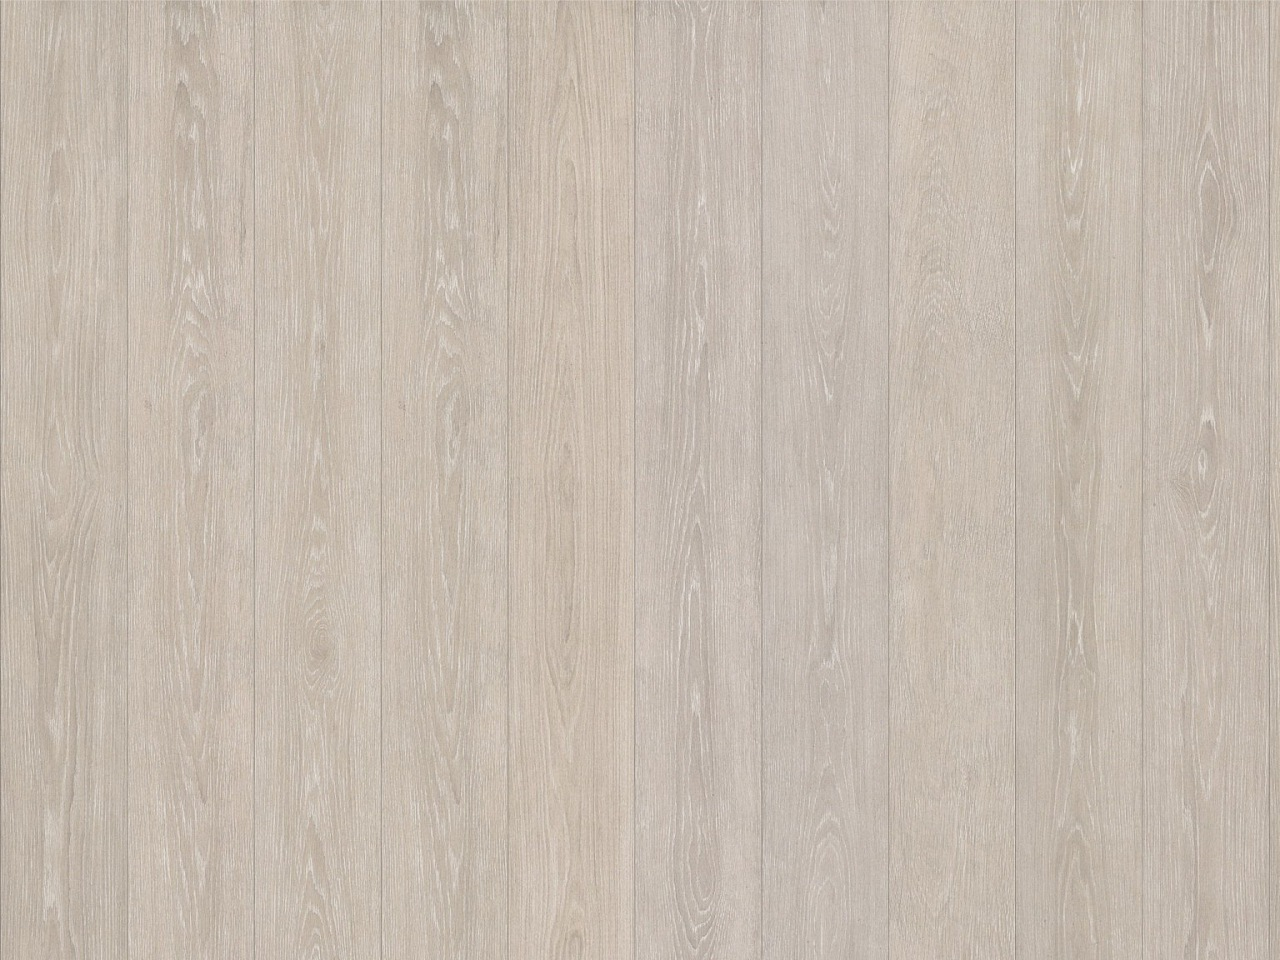 Kork Amora Wood – Altina Oak lang 4V, 8F5001